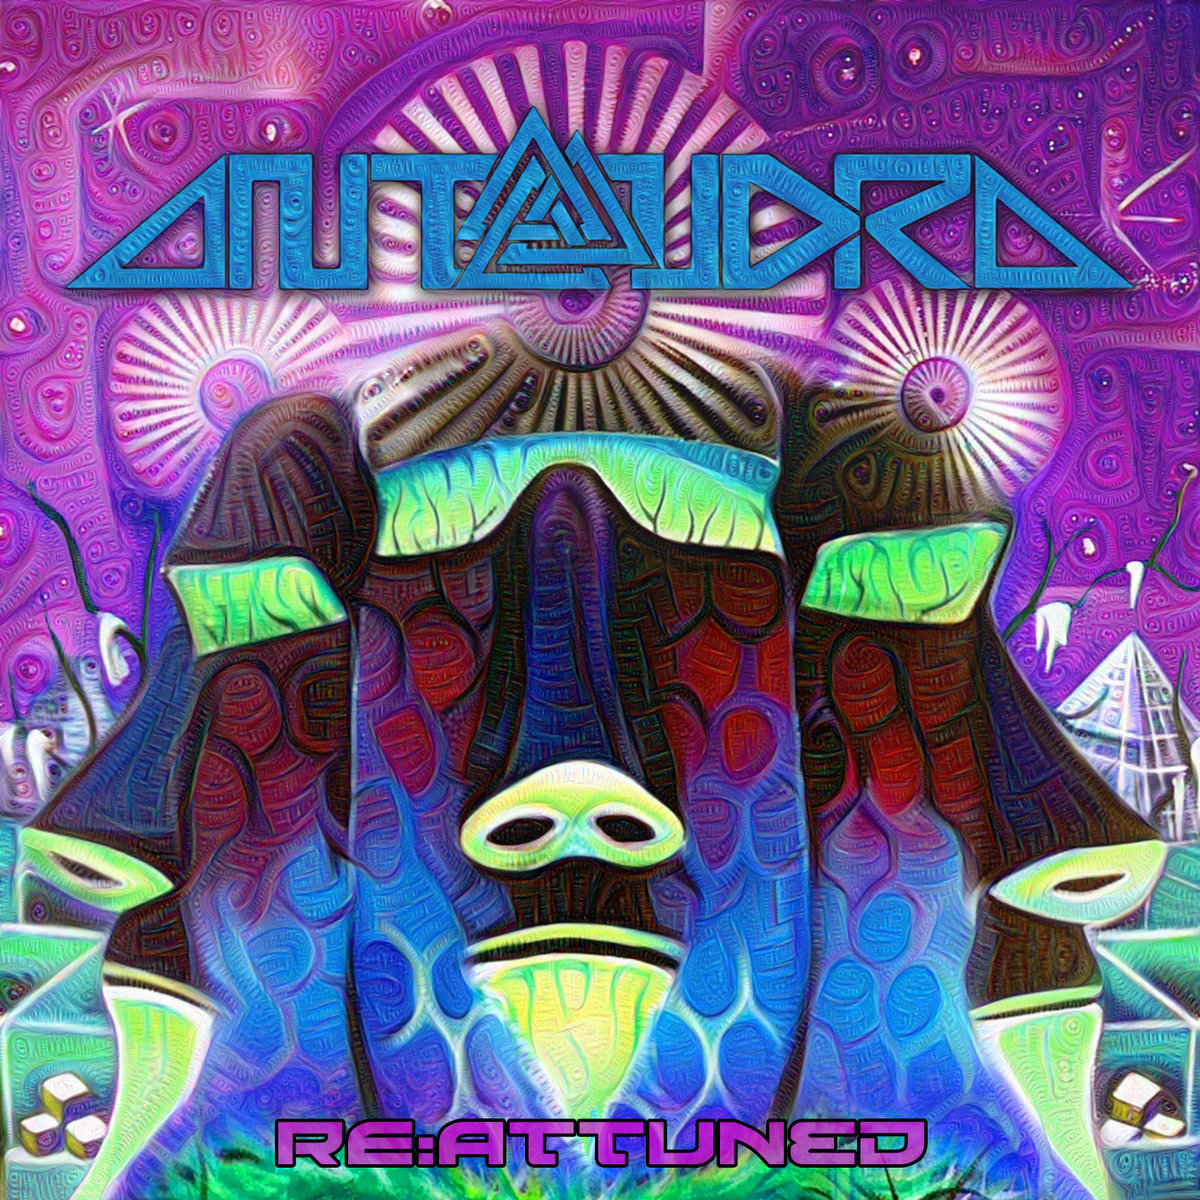 Antandra - RE:ATTUNED @ 'RE:ATTUNED' album (ambient, downtempo)